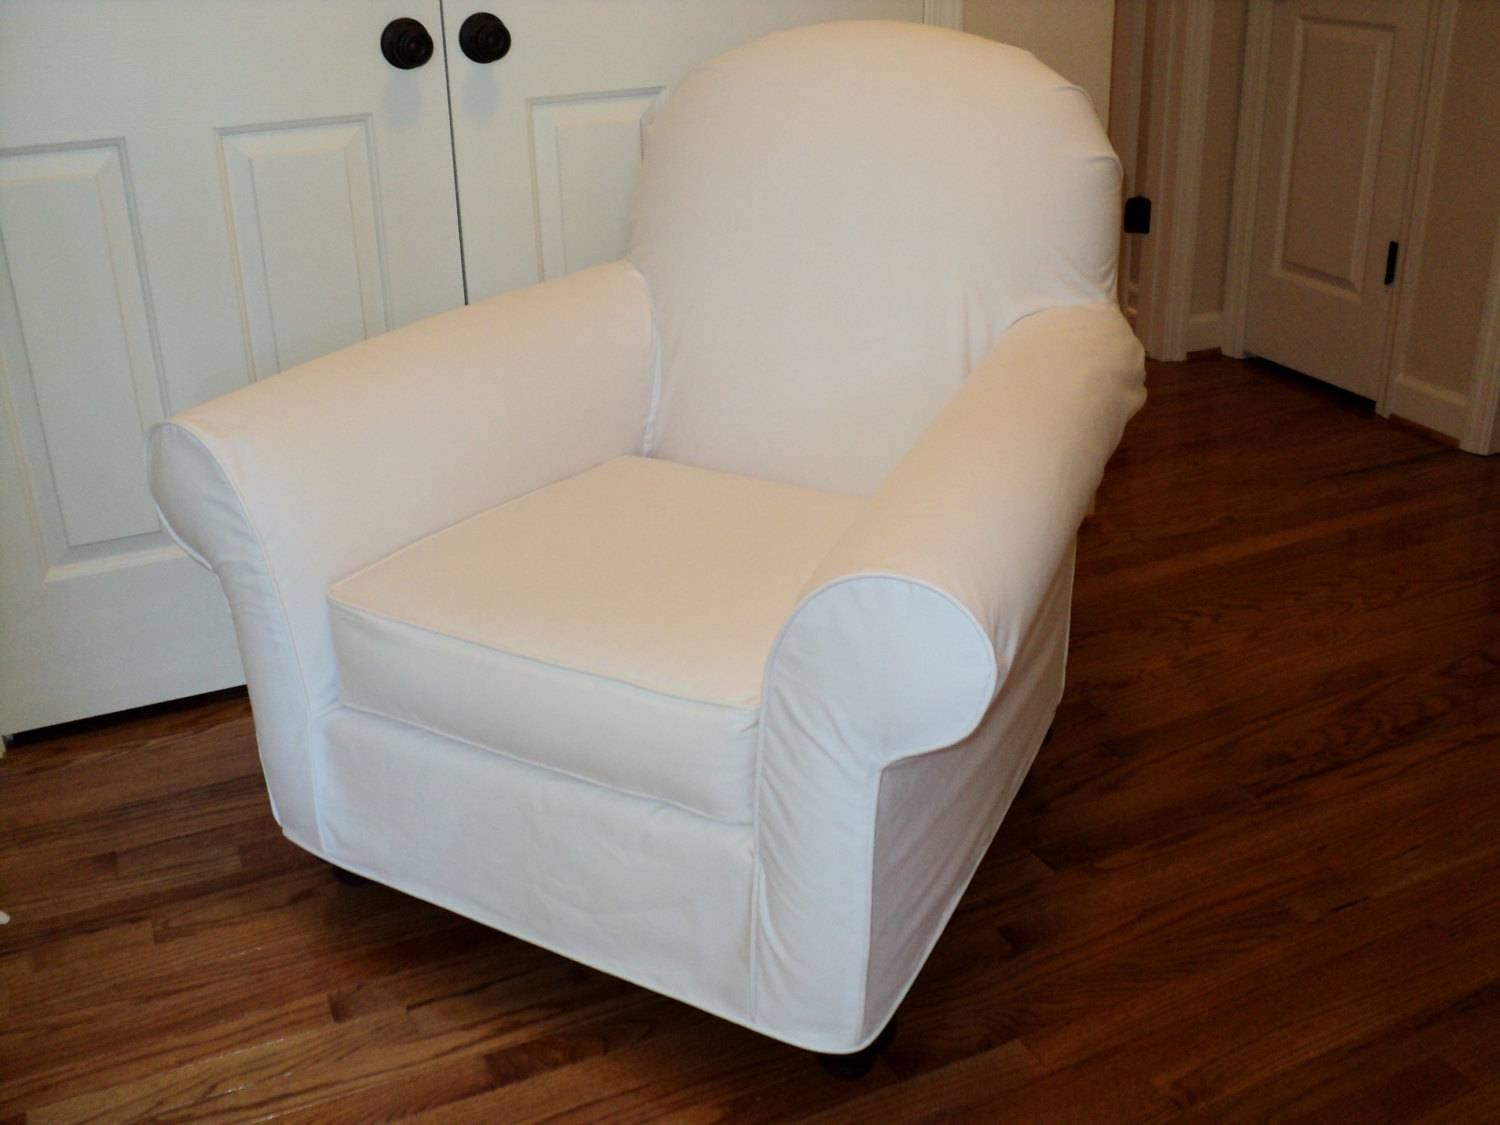 Custom Slipcover For Your Pb Dream Rocker With Wooden for Pottery Barn Chair Slipcovers (Image 2 of 15)